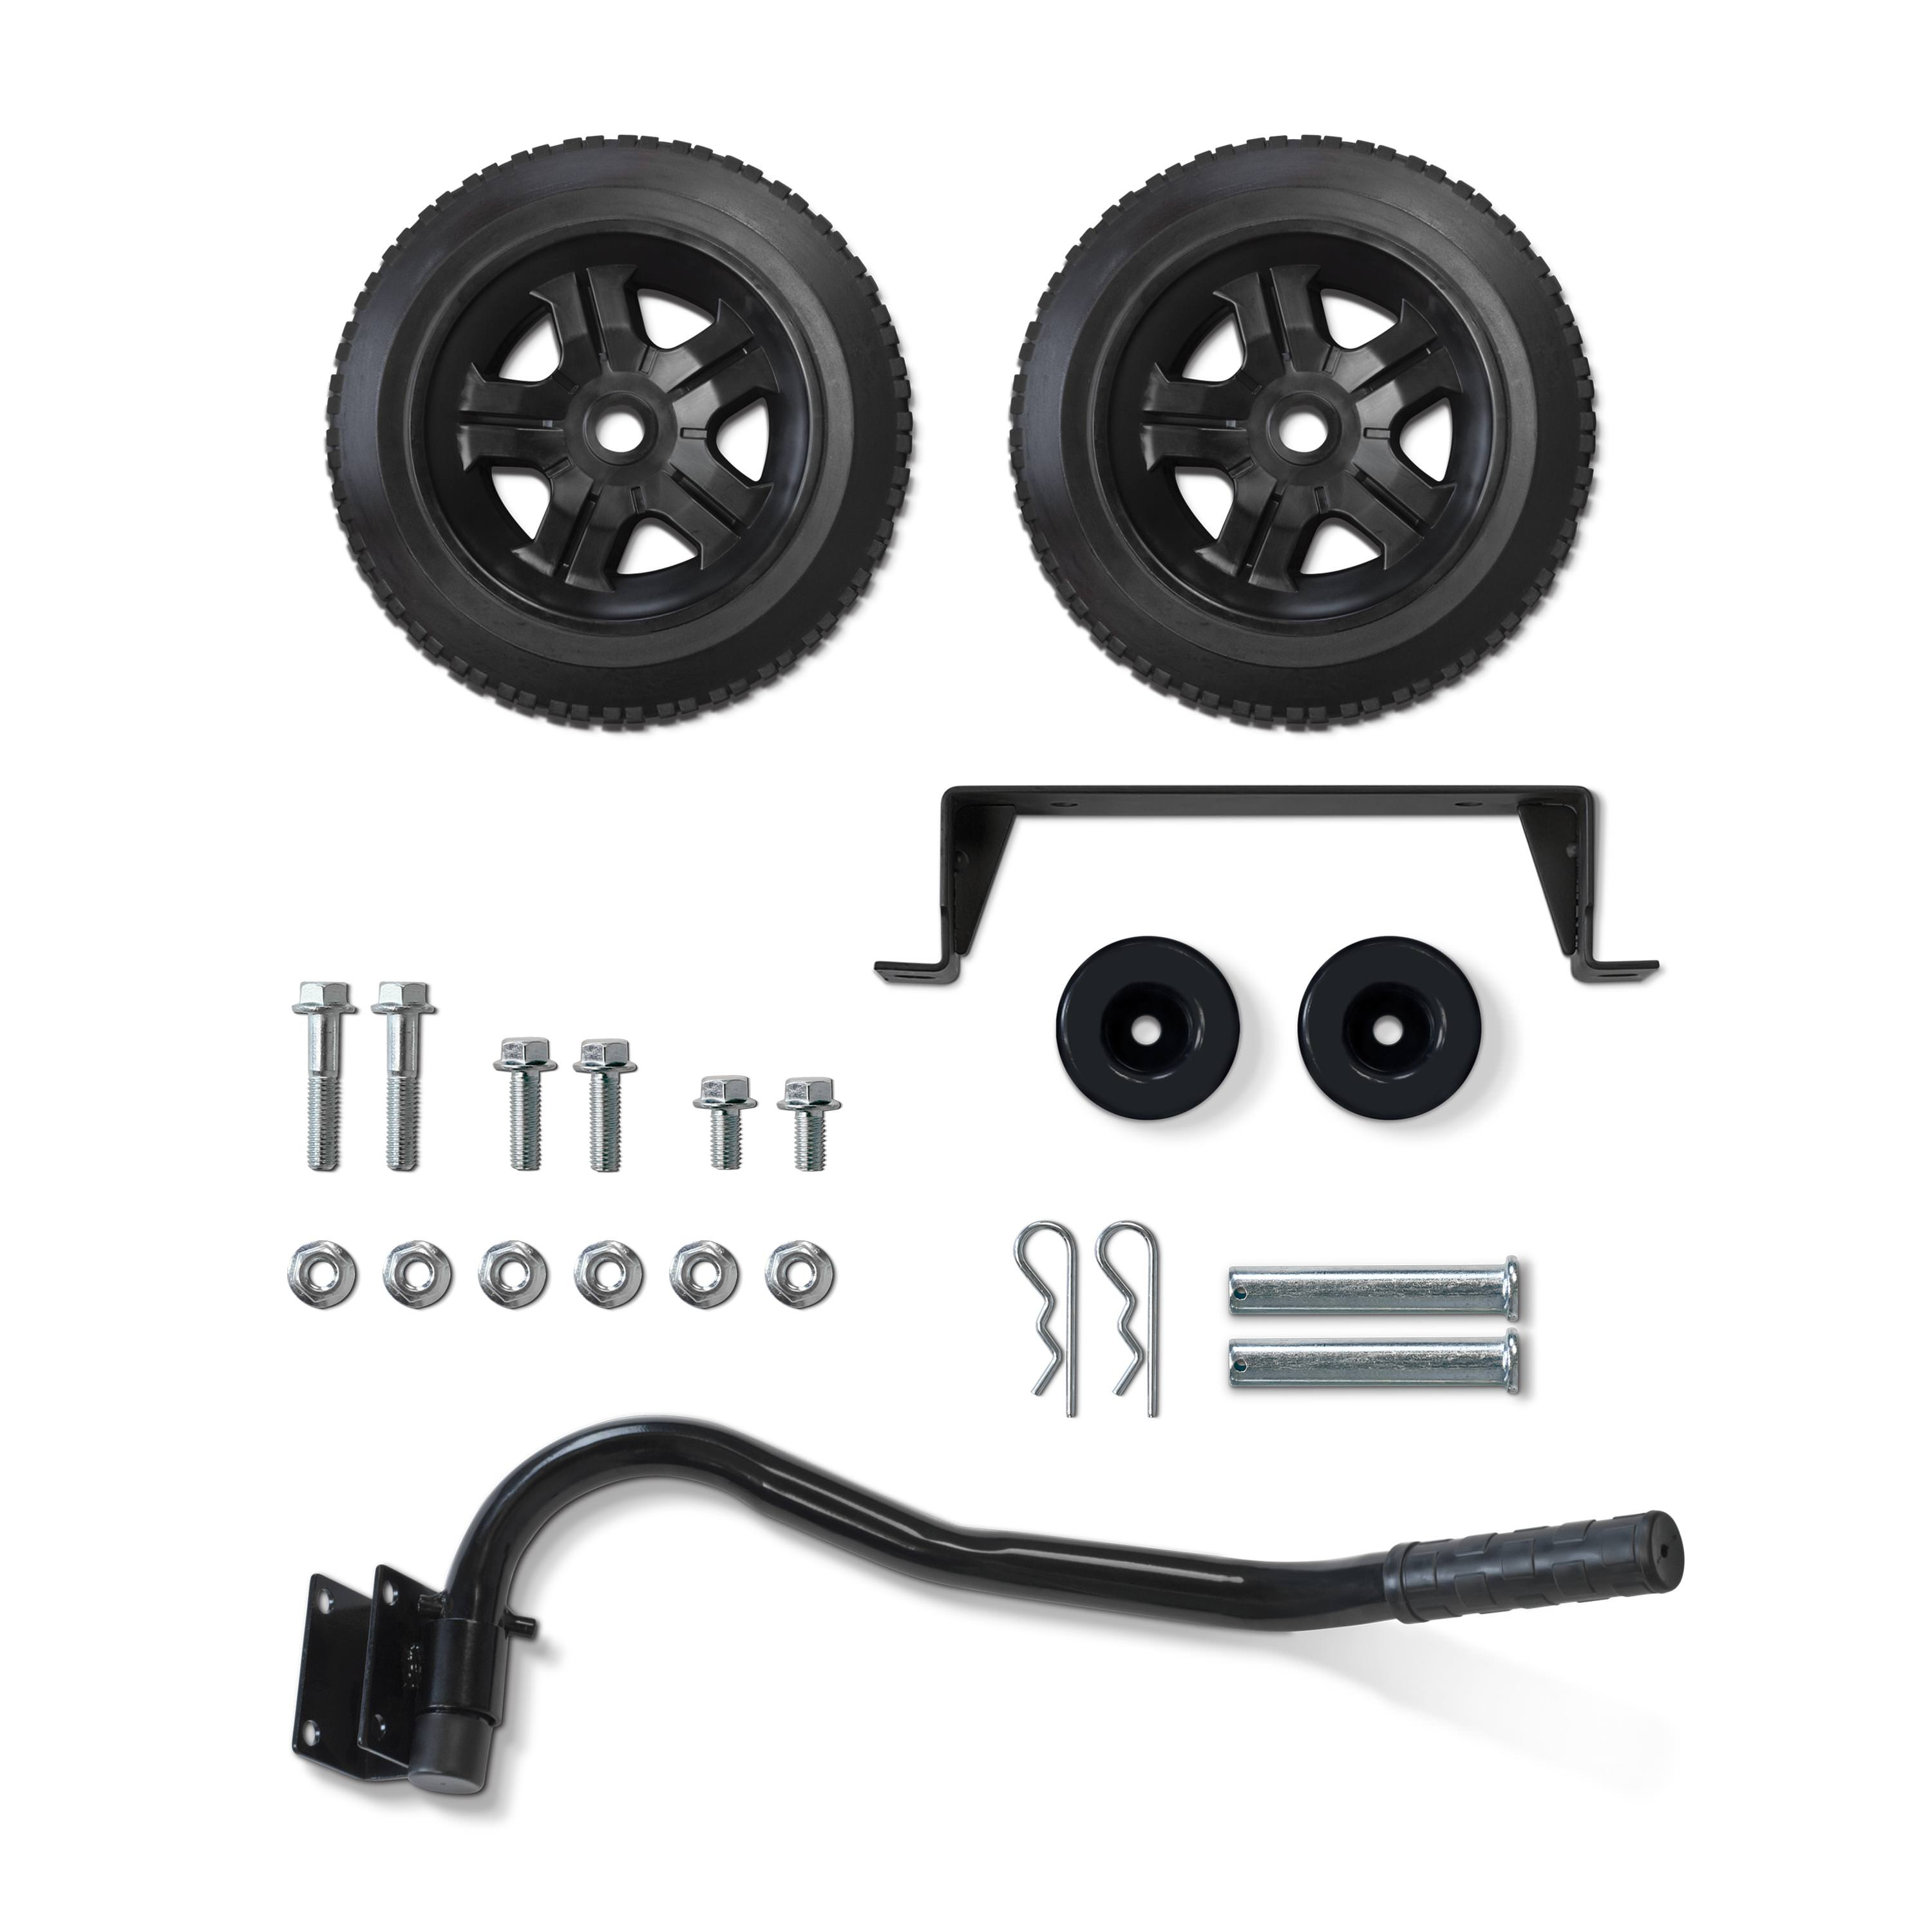 Champion Generator Wheel Kit with Axle, Folding Handle and Never-Flat Tires, 2800-4750 Watt